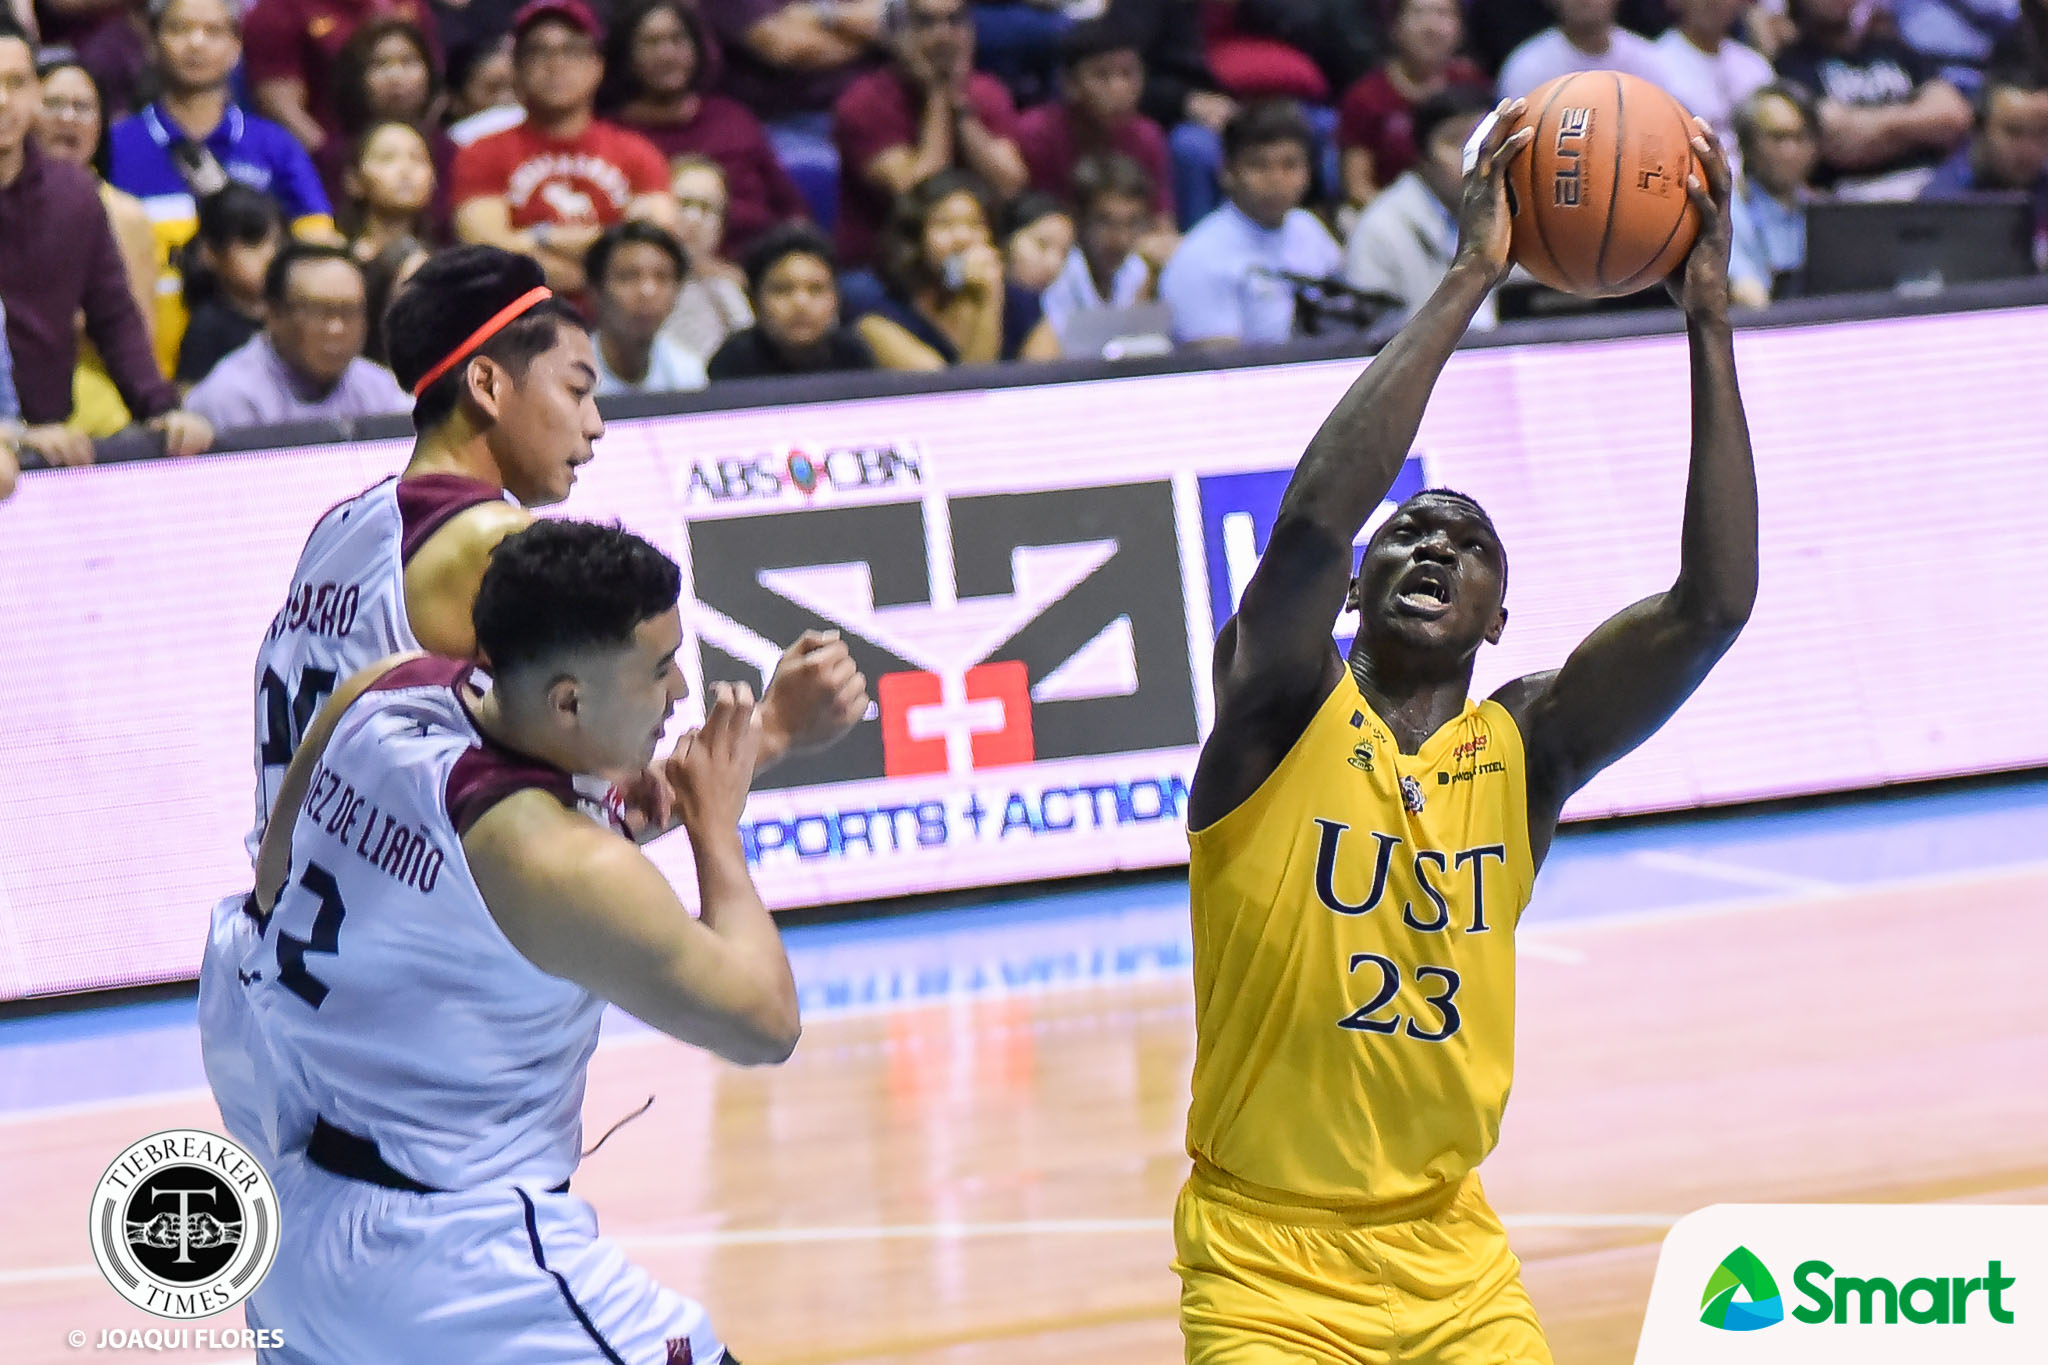 Tiebreaker Times Chabi Yo says Akhuetie match-up was really tough Basketball News UAAP UP  UP Men's Basketball UAAP Season 82 Men's Basketball UAAP Season 82 Bright Akhuetie